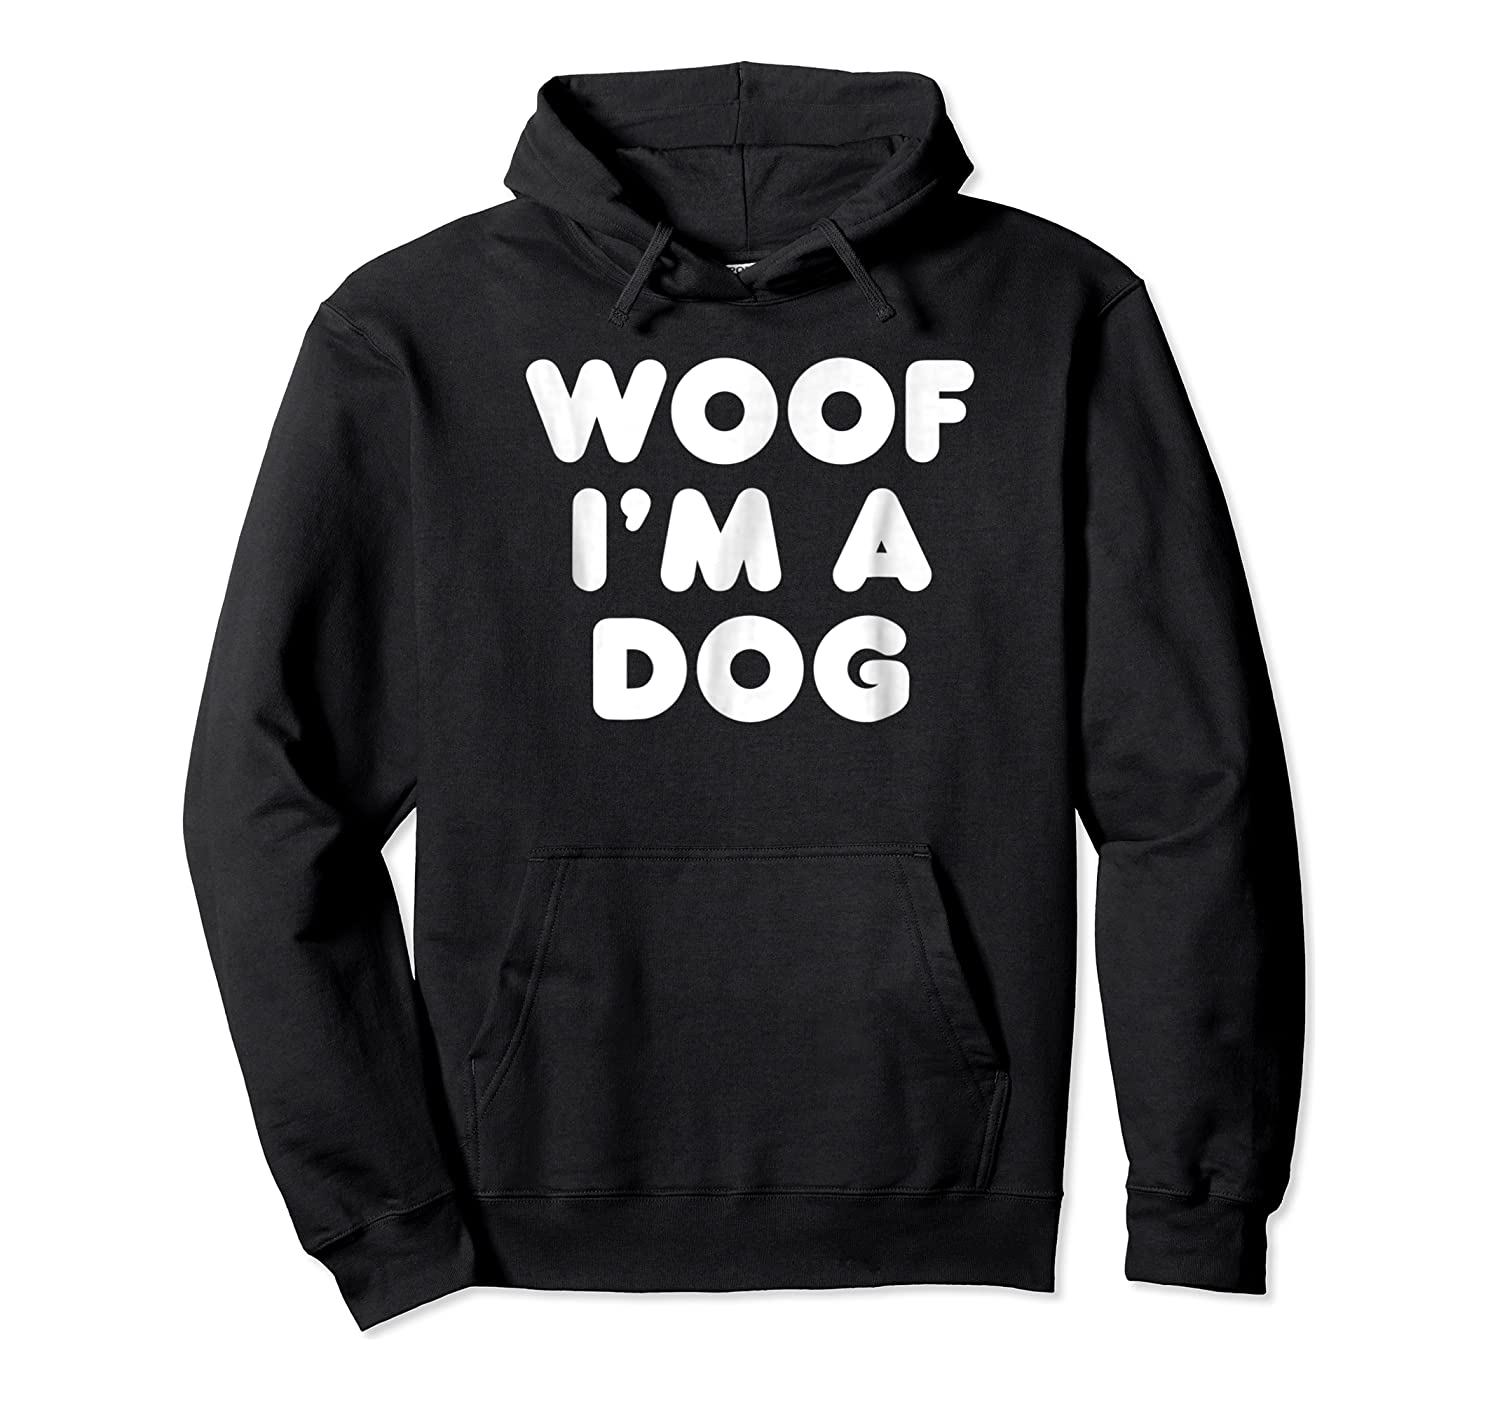 Woof I'm A Dog T-shirt - Funny Animal Halloween Costume Tee Unisex Pullover Hoodie